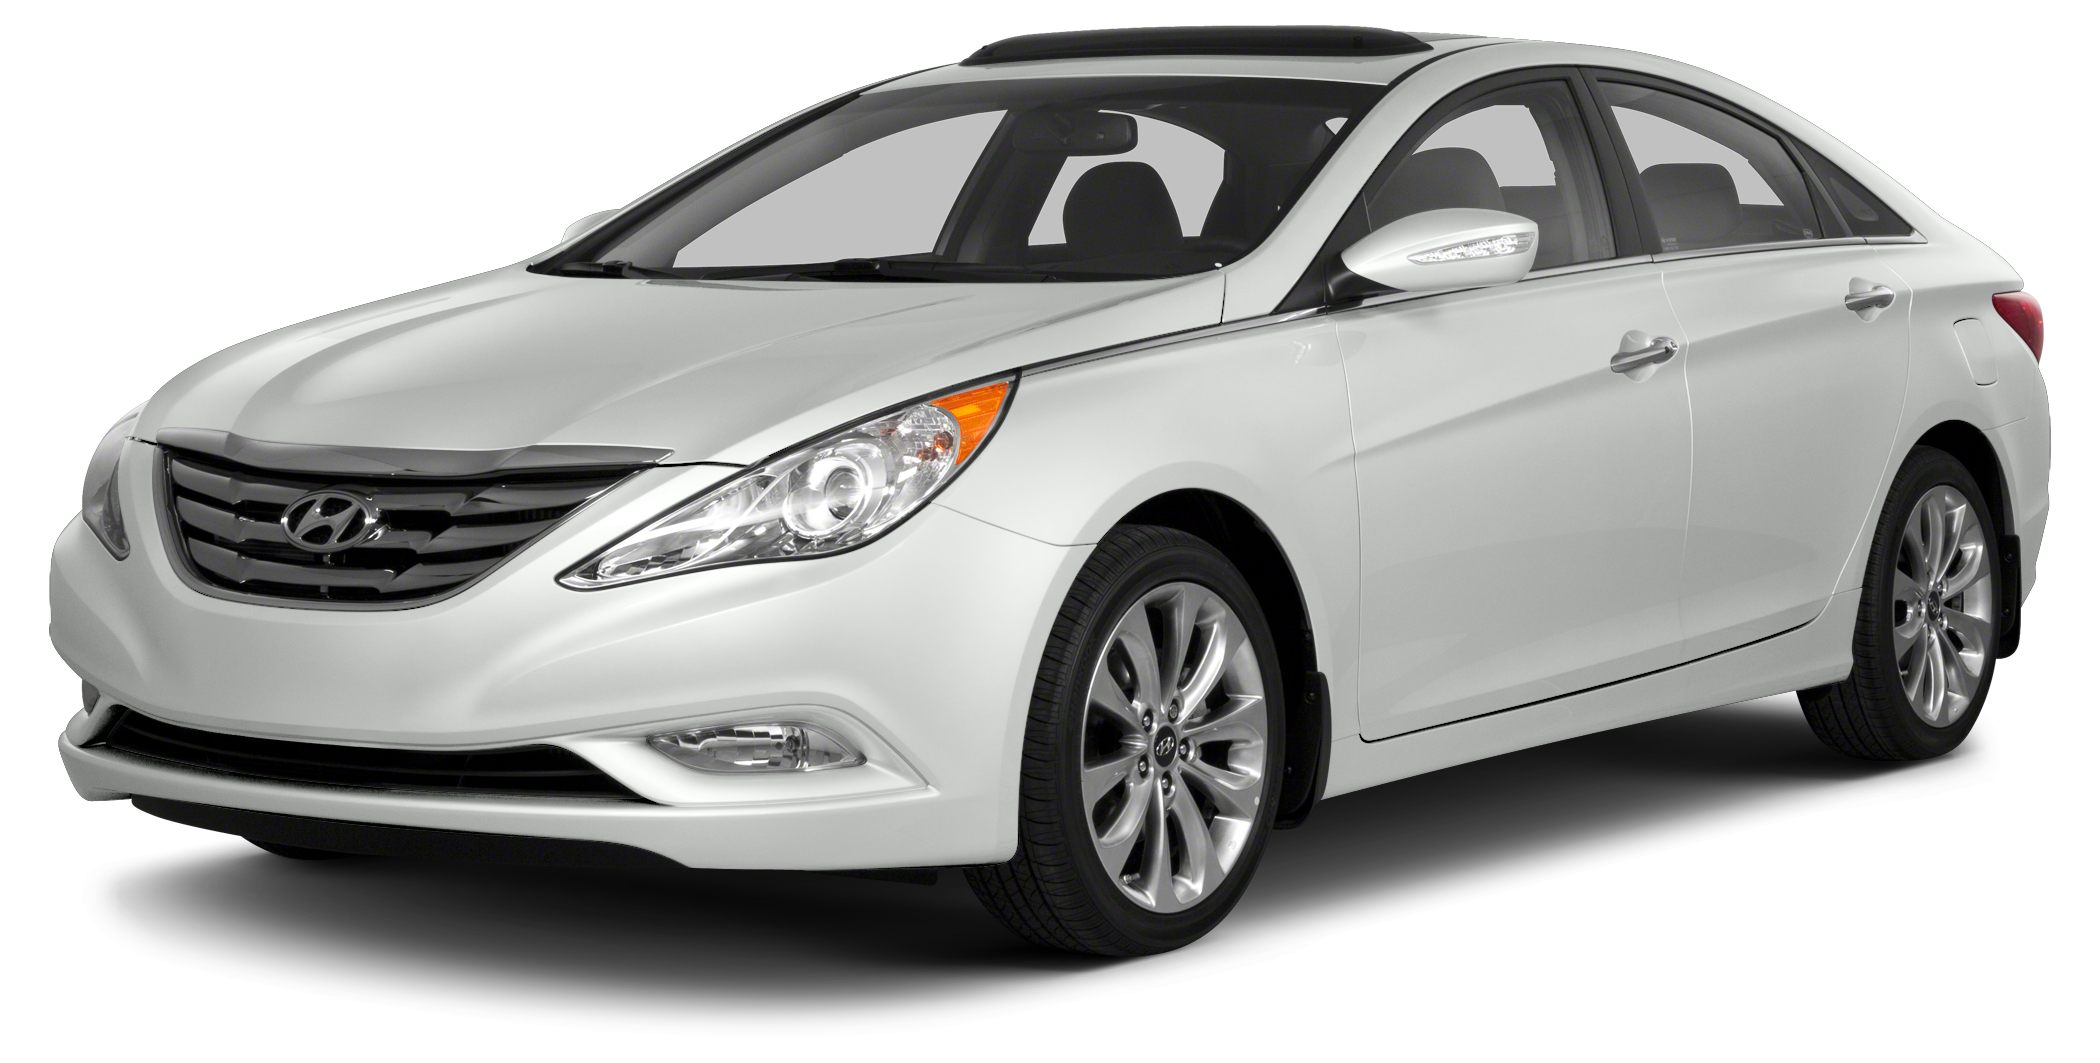 2013 Hyundai Sonata GLS Hyundai Certified --- all serviced by us -- This one owner Sonata comes wi